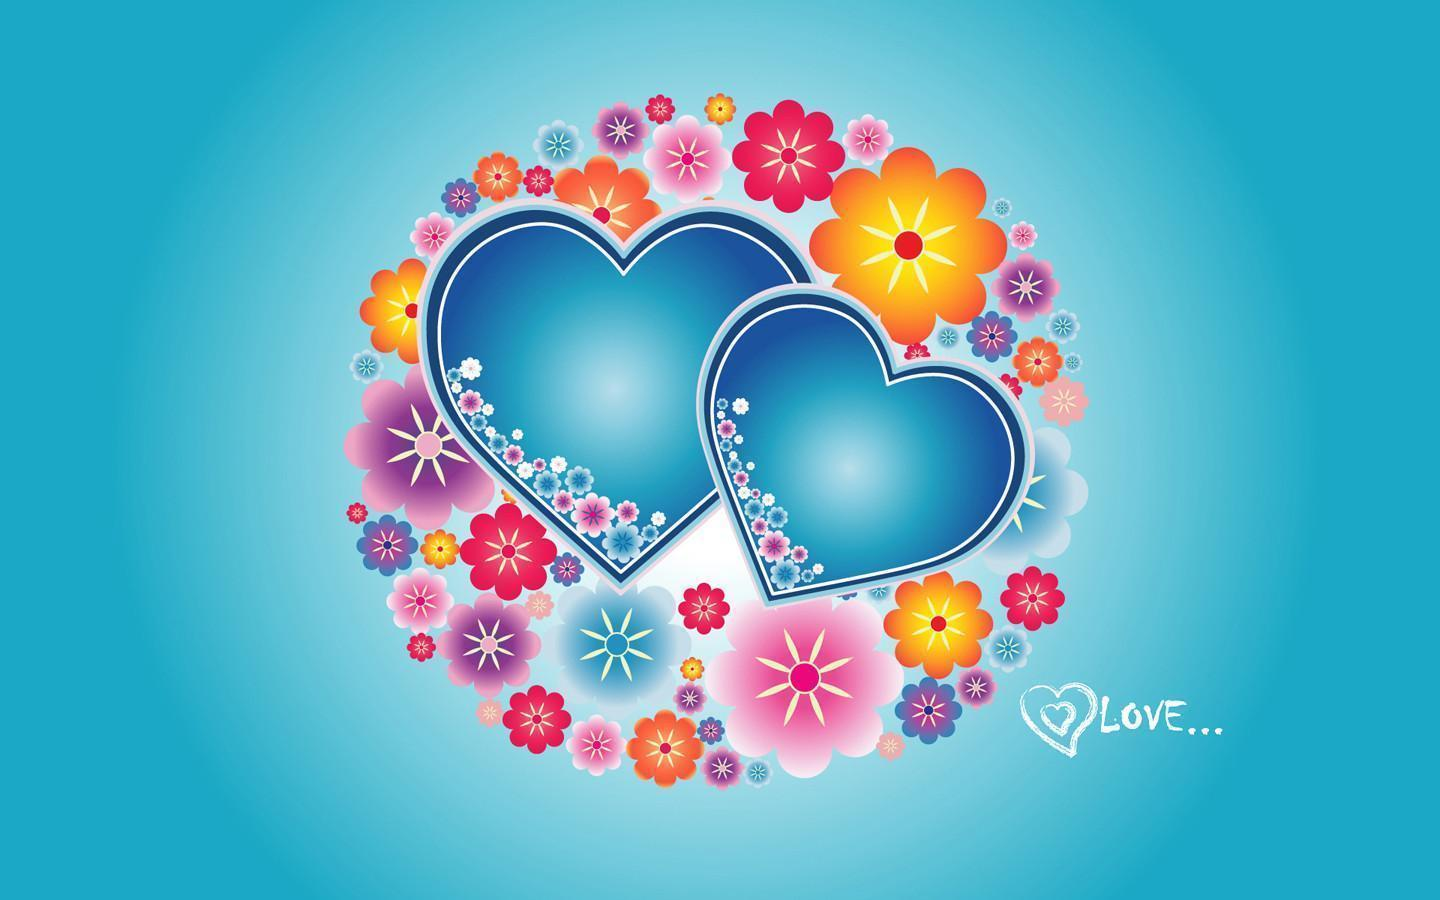 Love Vale Wallpaper : Love Heart Wallpapers HD - Wallpaper cave